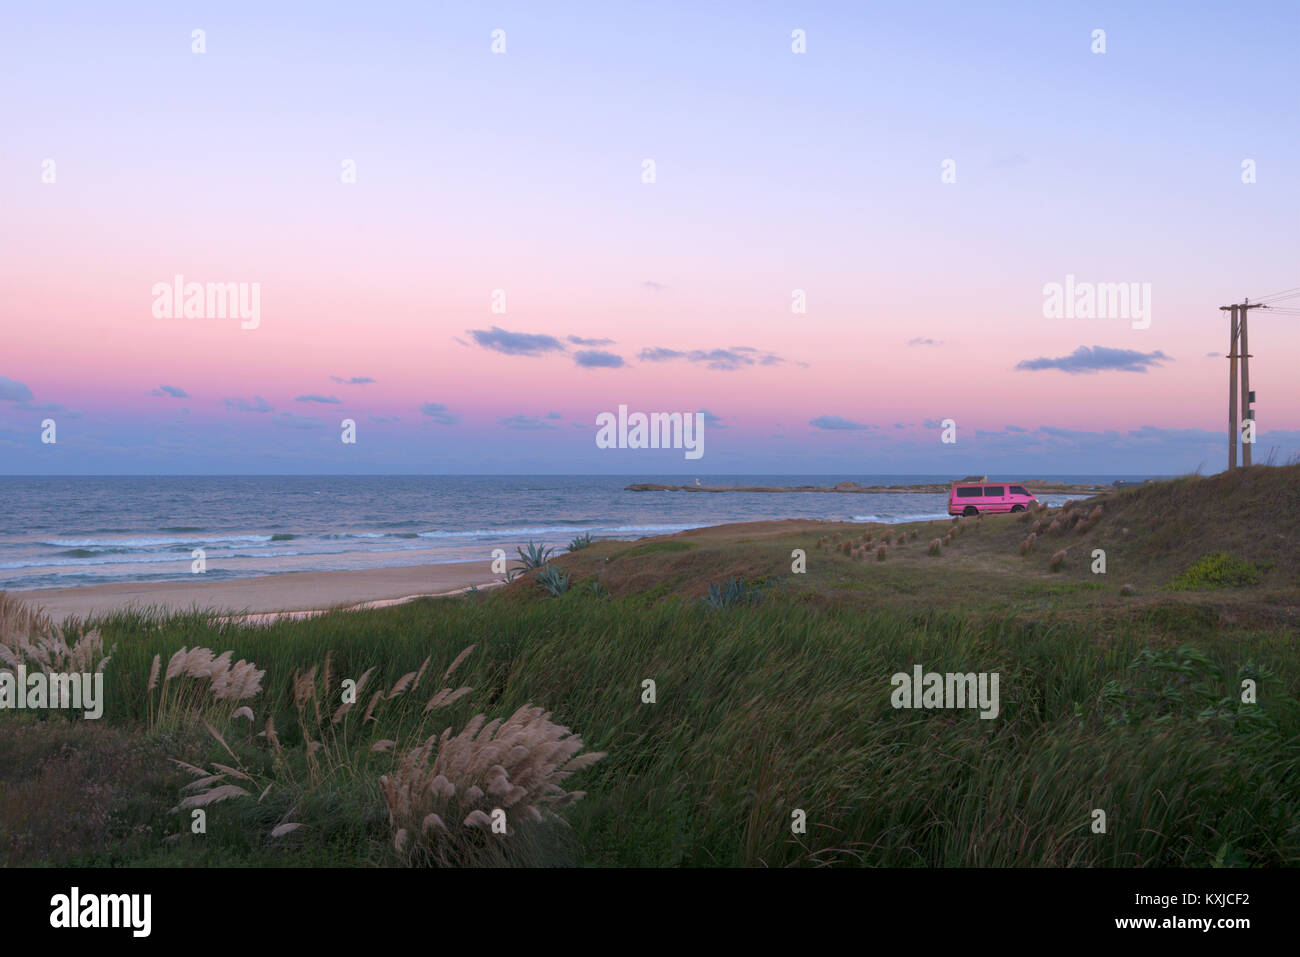 Punta del Diablo, Uruguay Stock Photo